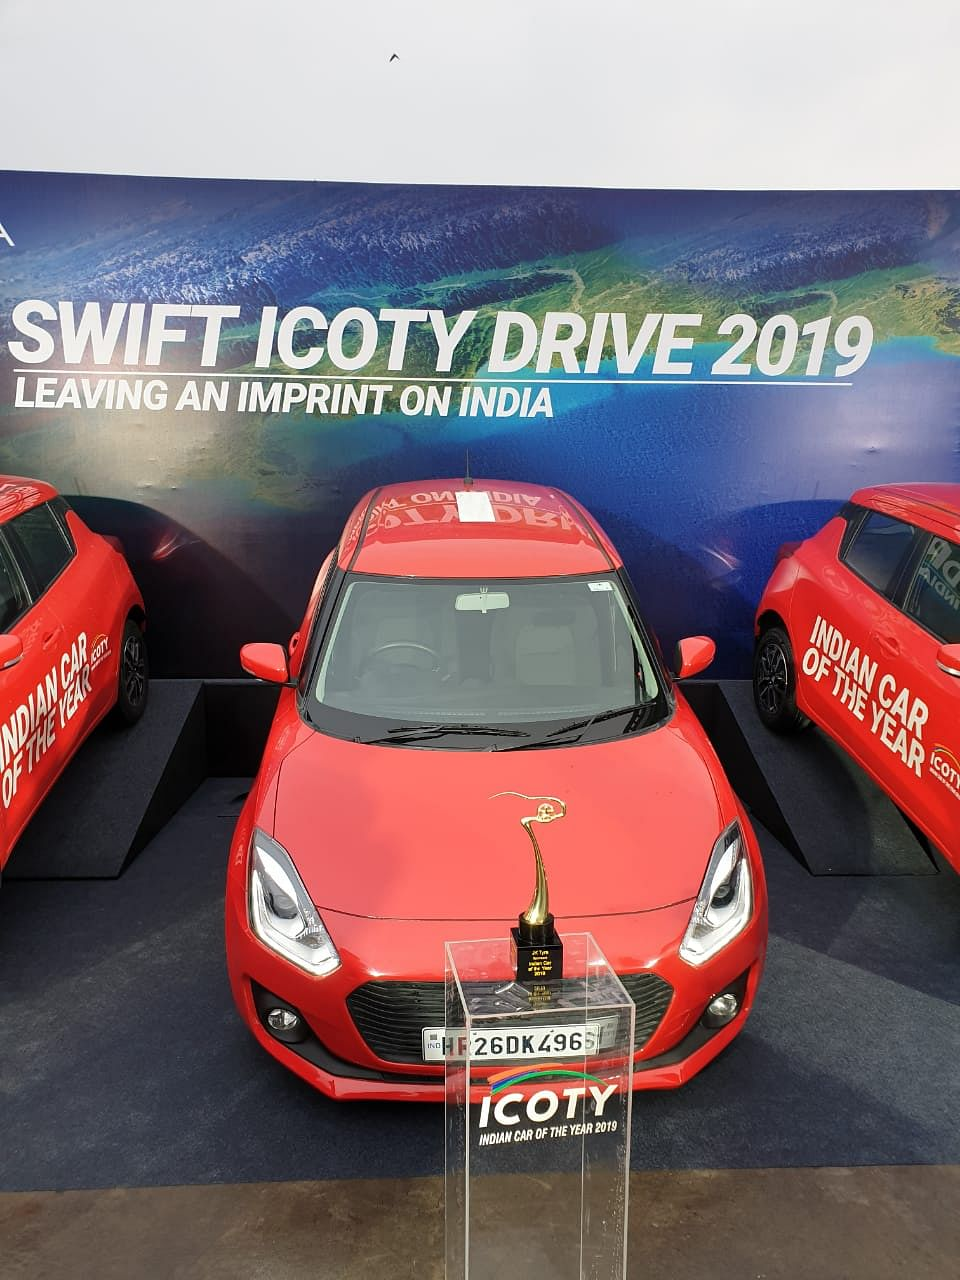 Maruti Suzuki Swift ICOTY drive to be flagged off tomorrow